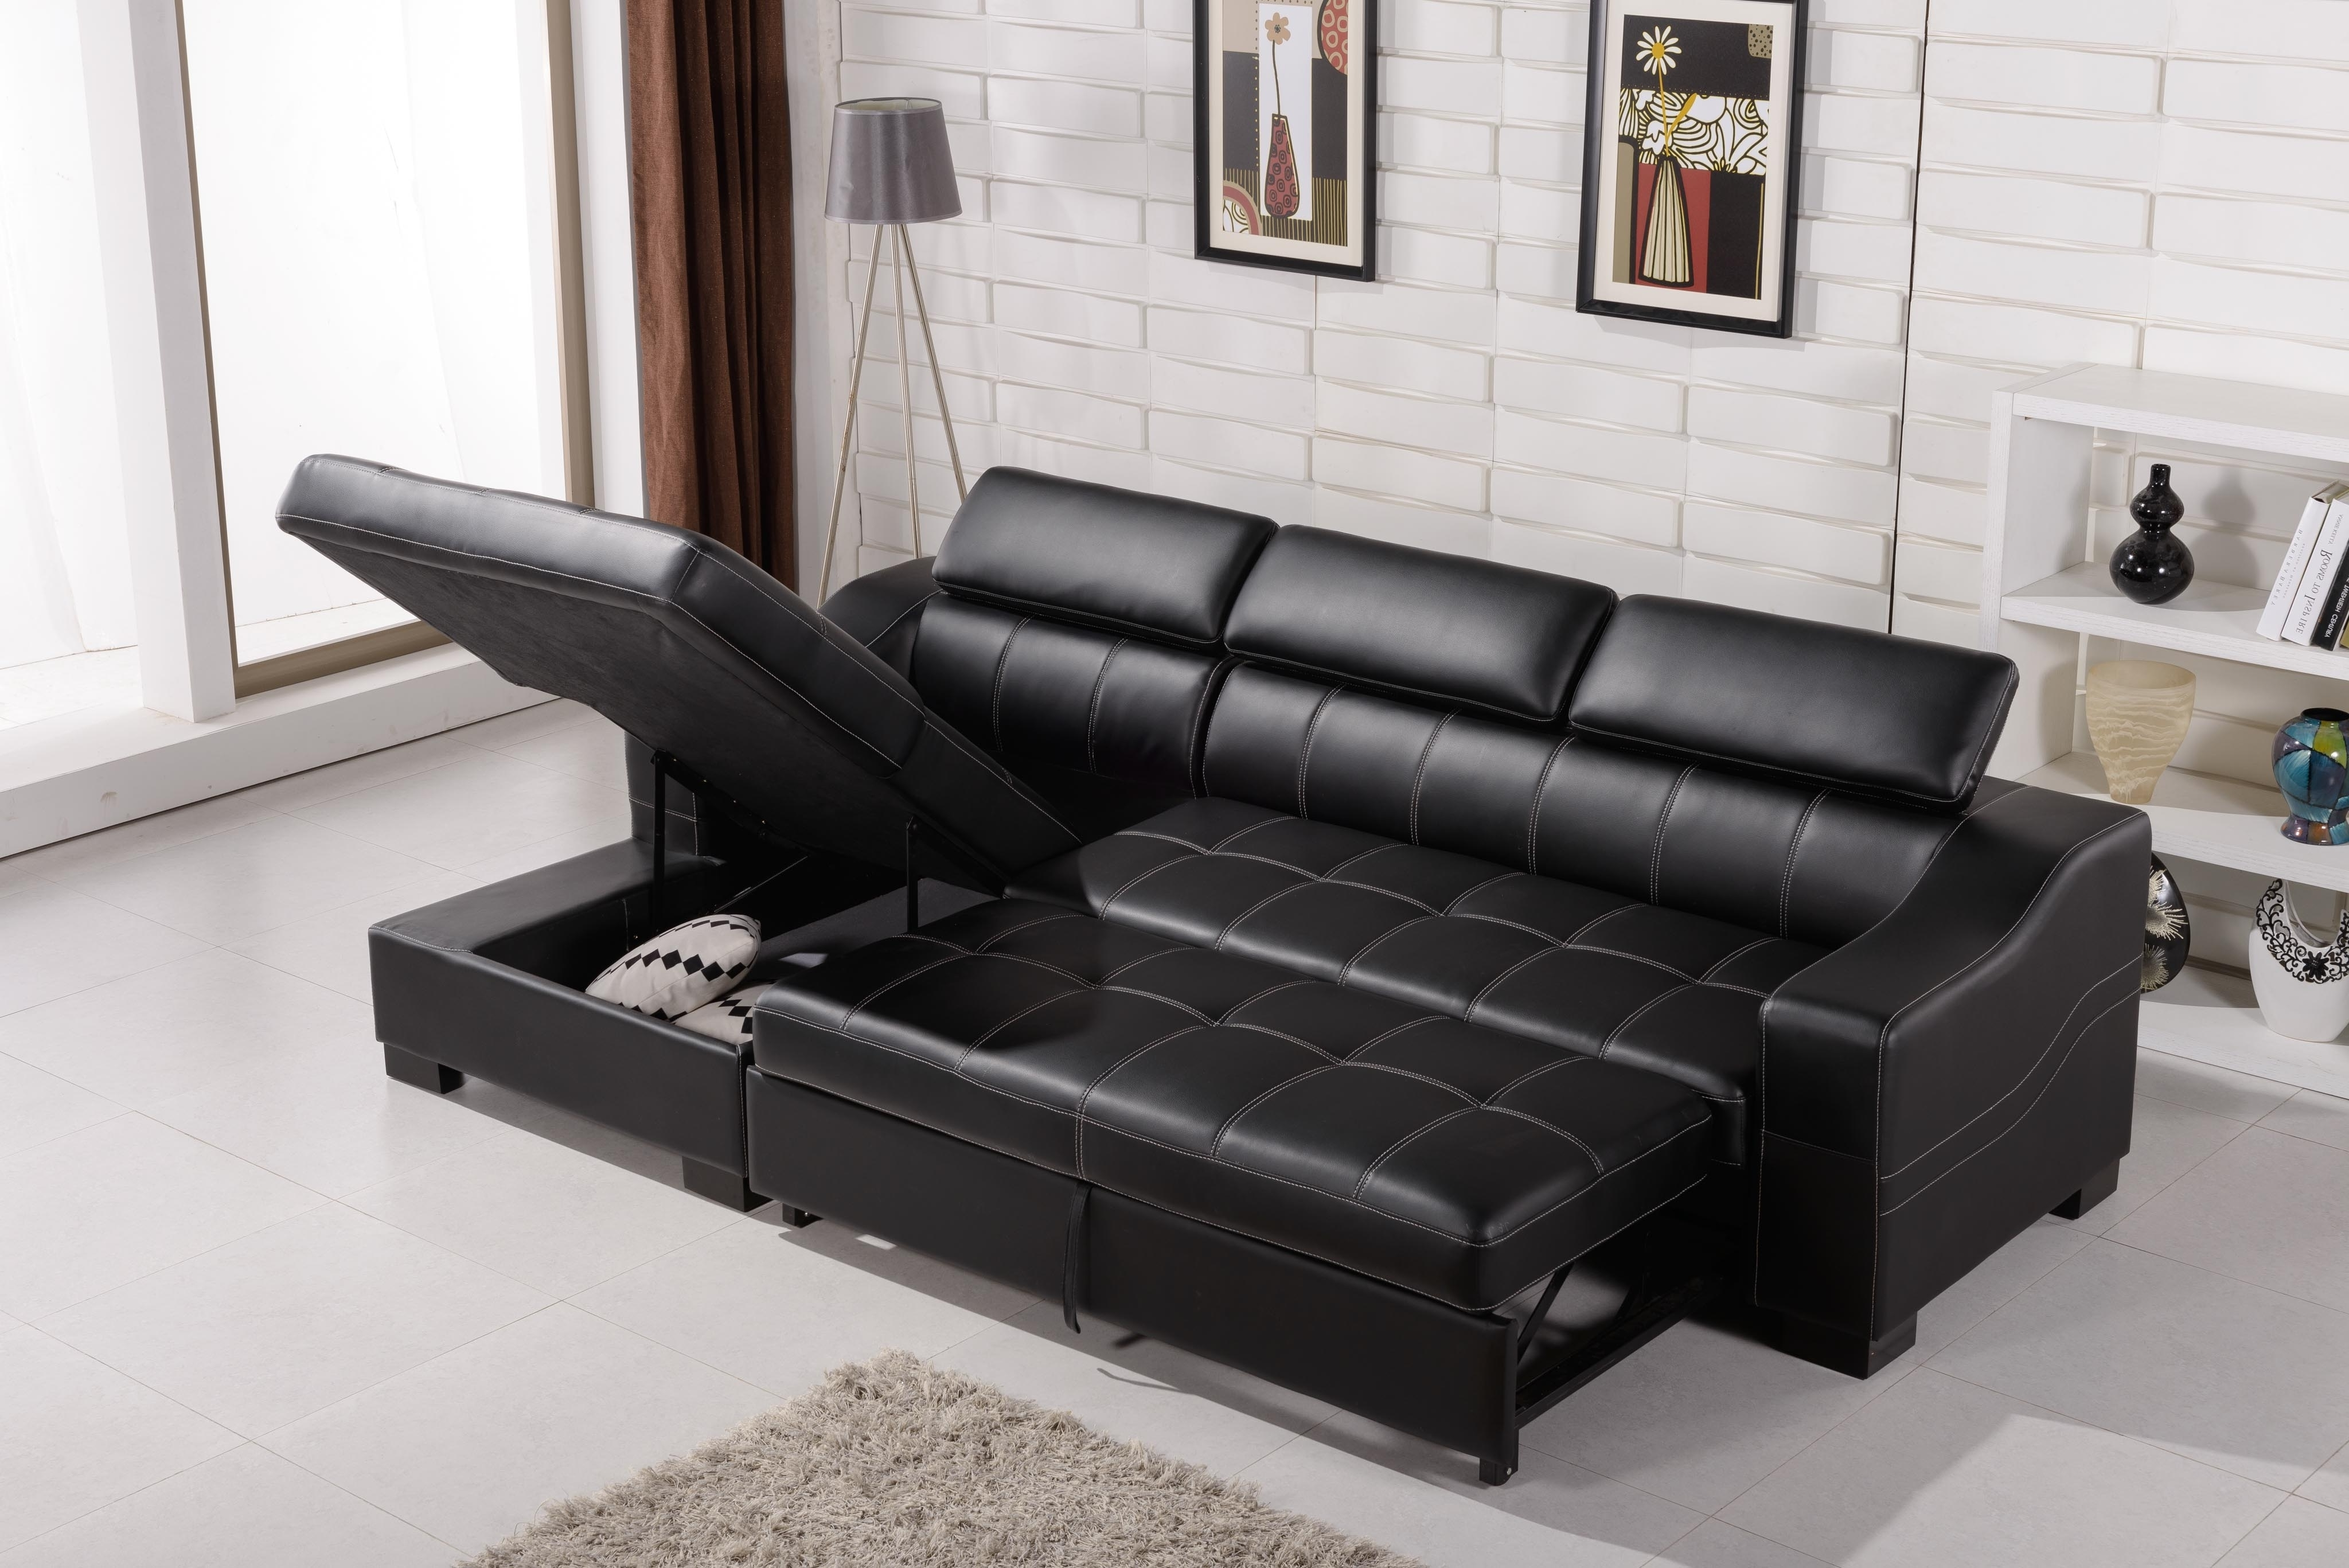 Recent Sectional Sofas That Turn Into Beds With Sectional Sofa That Turns Into A Bed • Sofa Bed (View 2 of 20)